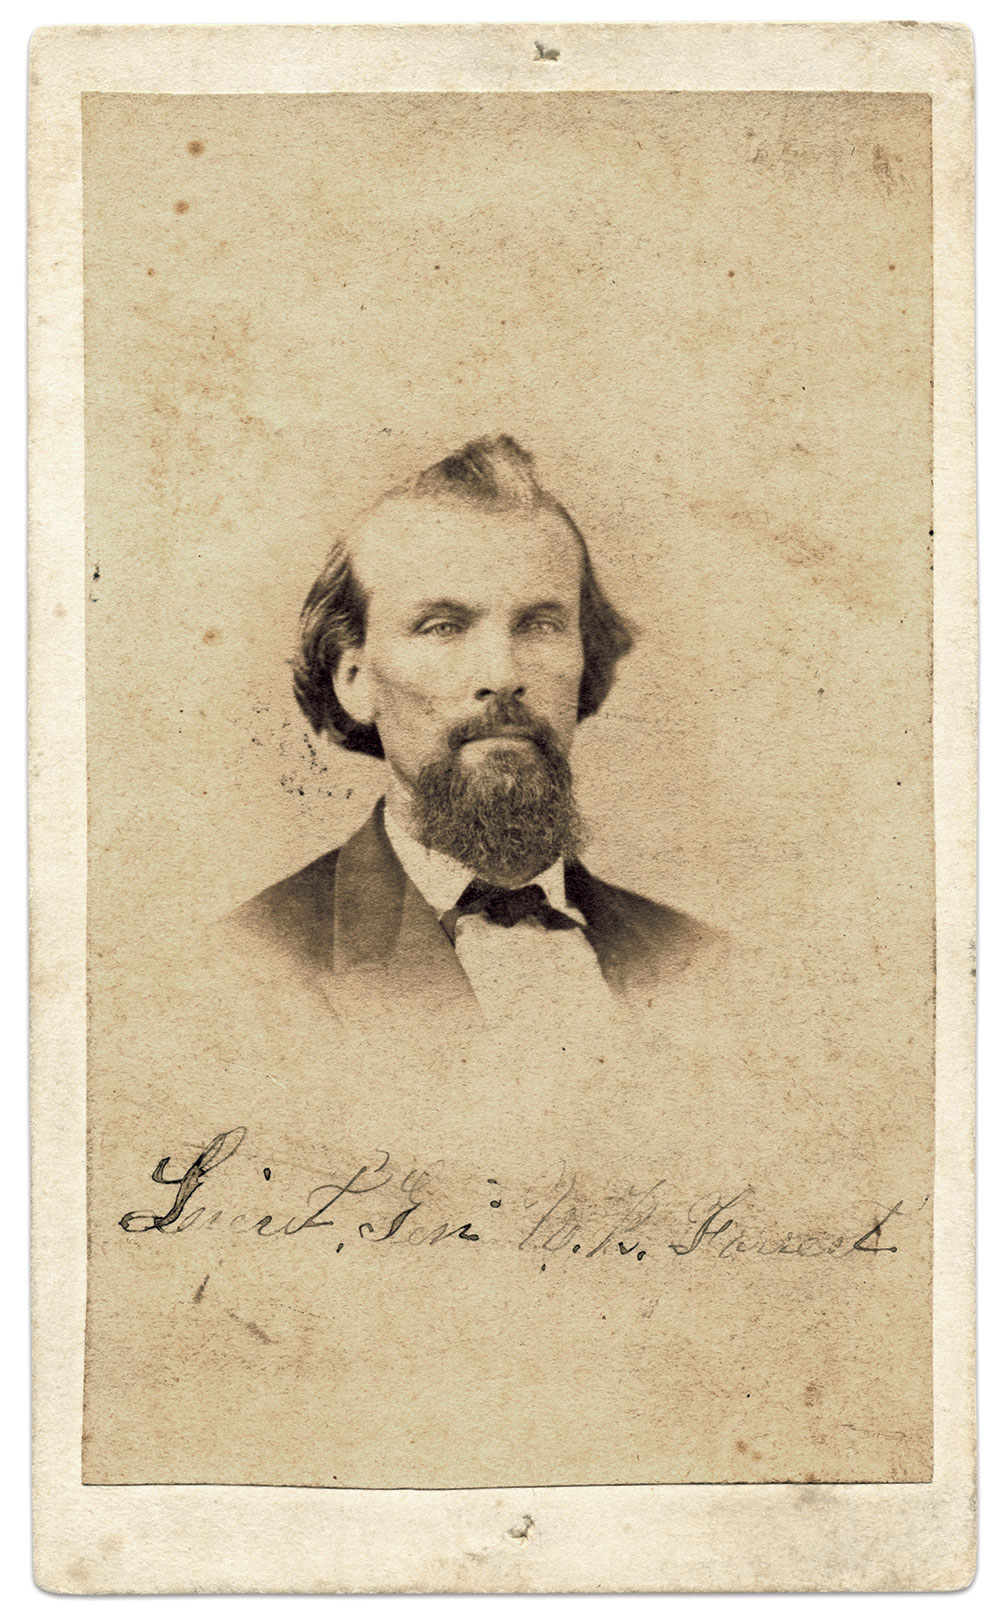 Carte de visite by Bingham & Brother's Gallery of Memphis, Tenn. Steve and Mike Romano Collection.